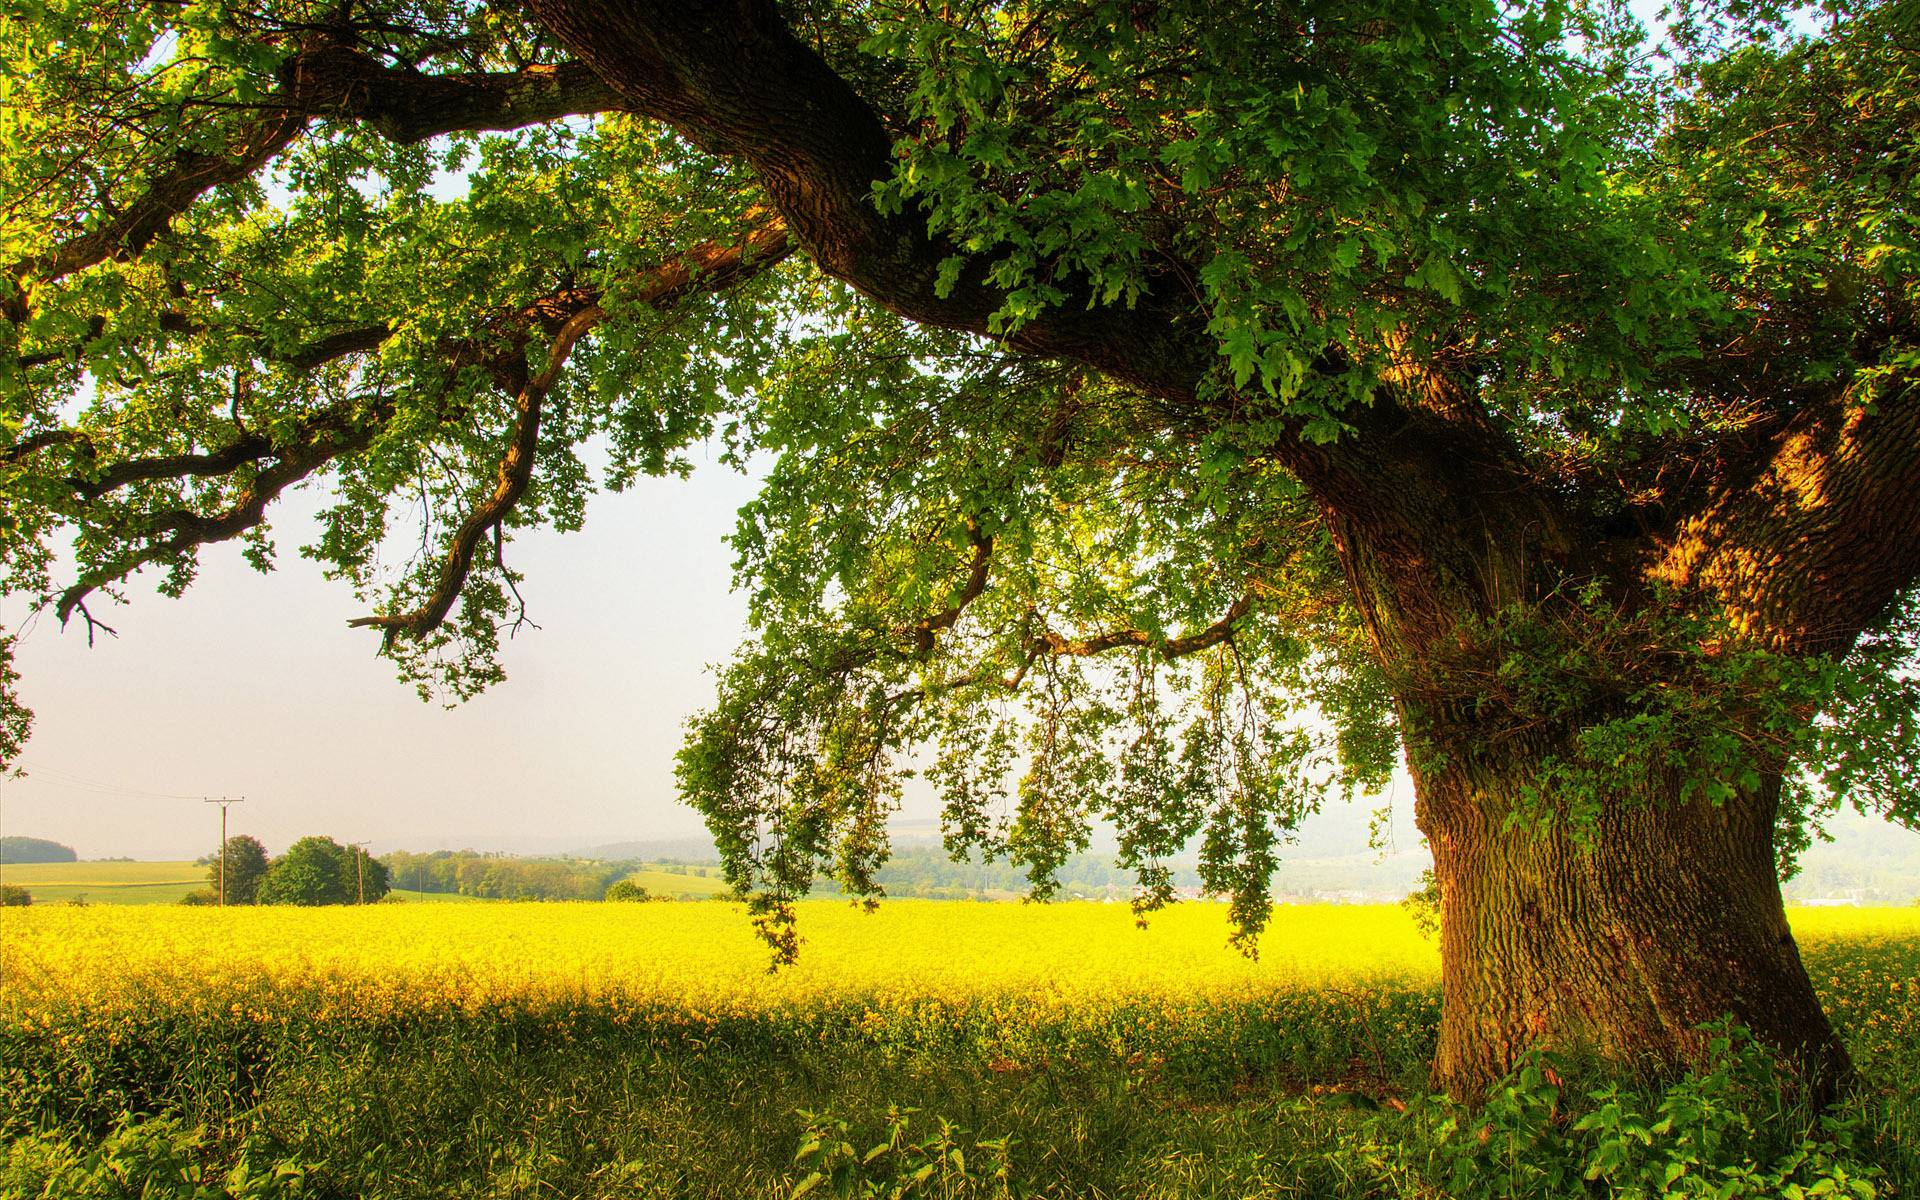 Oak Tree Wallpapers and Background Images   stmednet 1920x1200